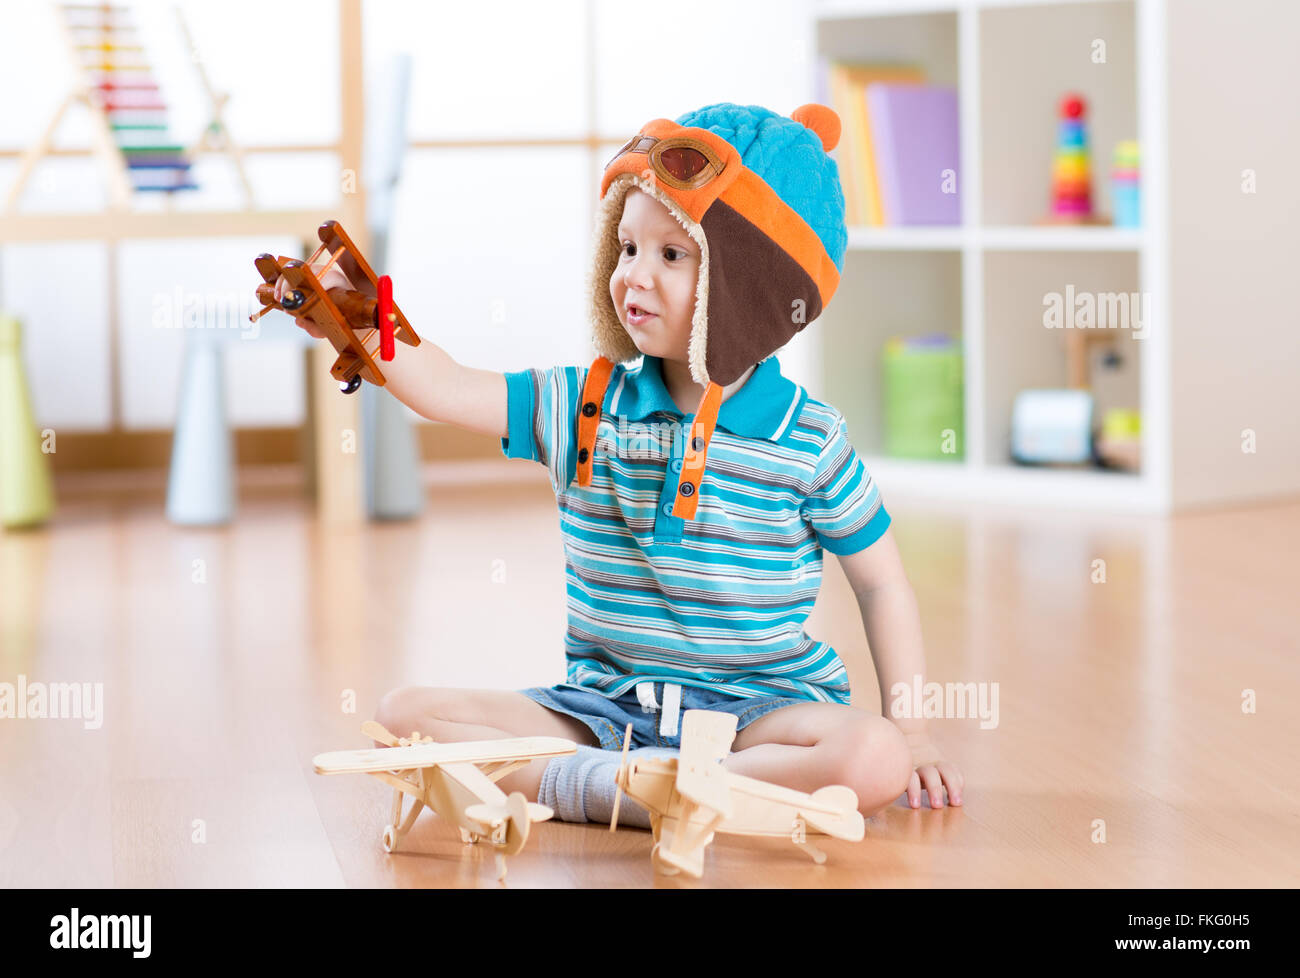 happy child toddler playing with toy airplane and dreaming of becoming a pilot Stock Photo